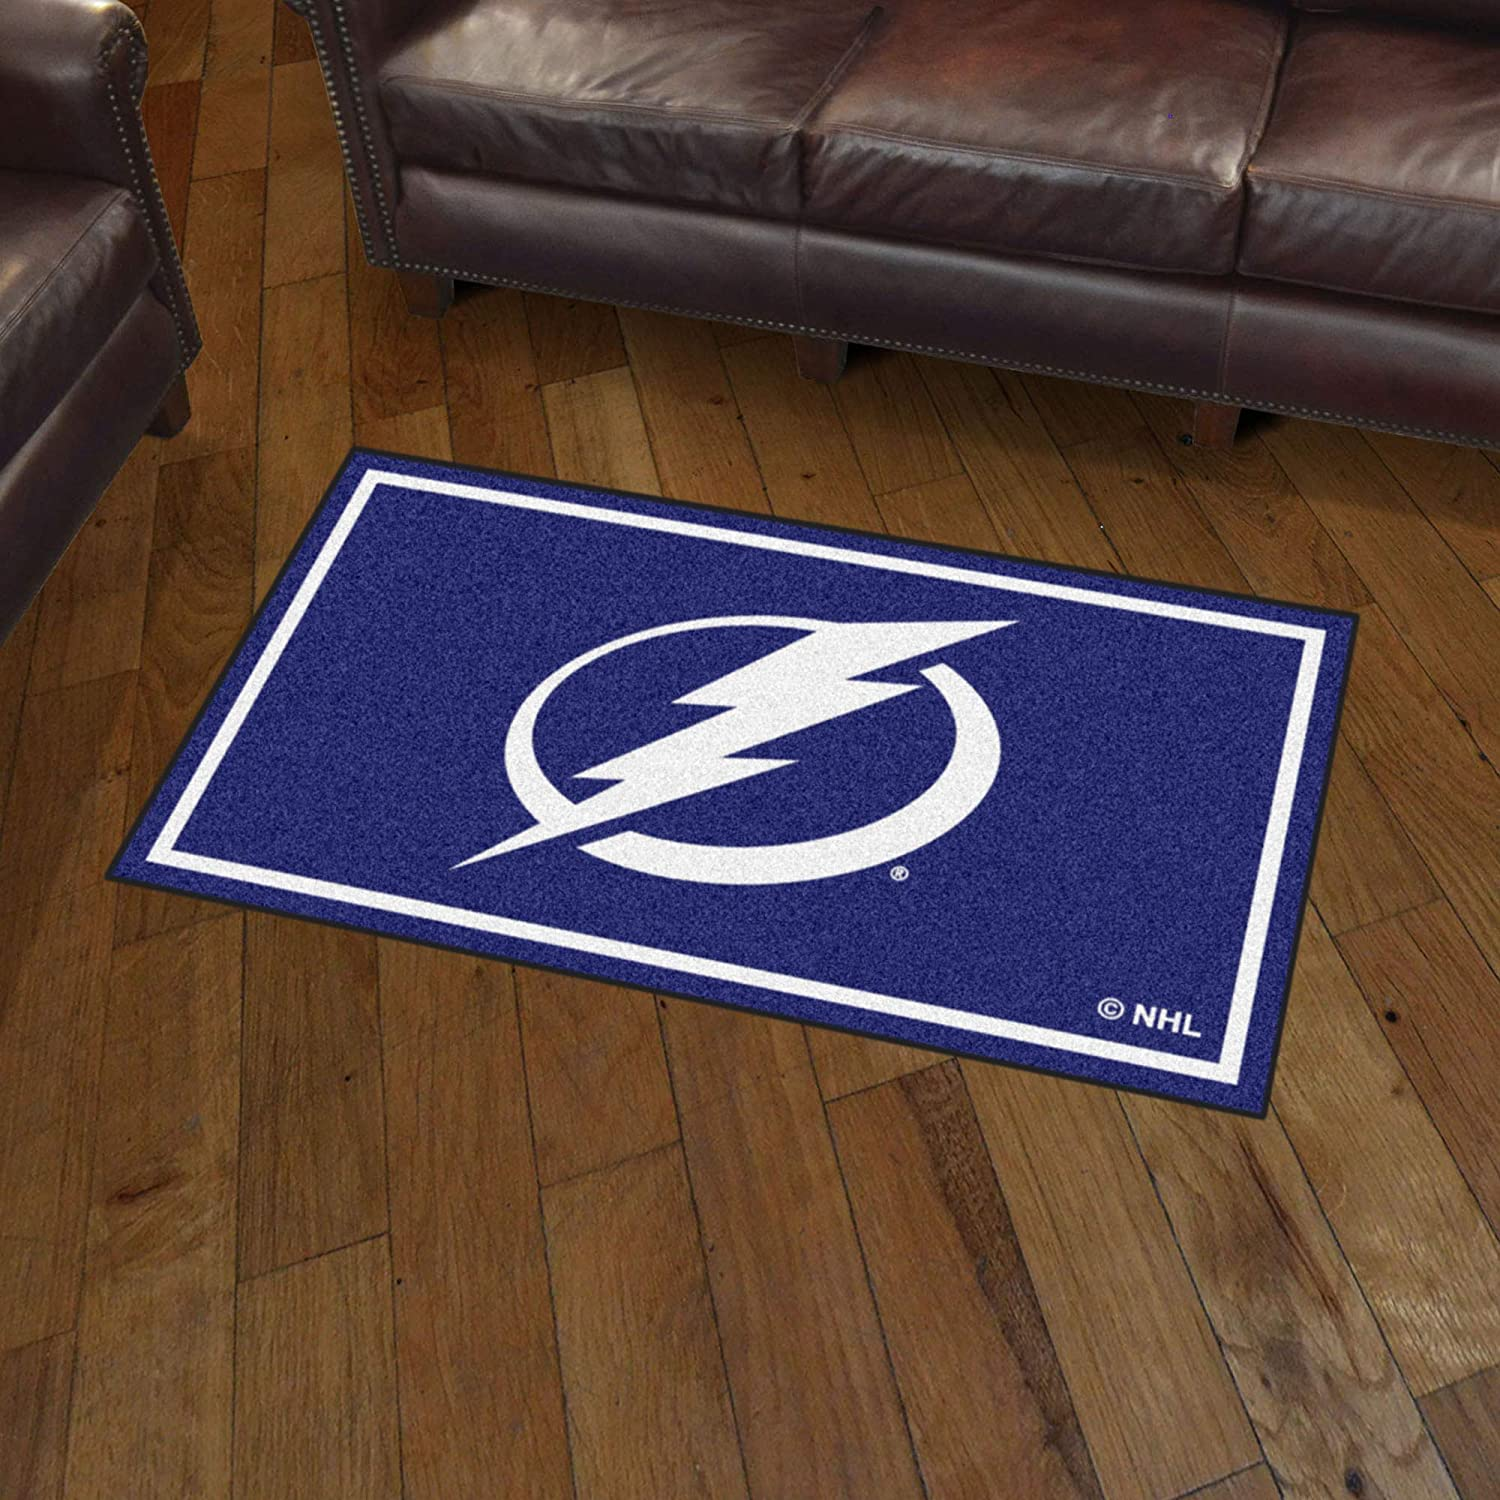 Area Rug Area RUG3 Ft Blue x 5 Ft x 5 Ft FANMATS NHL Tampa Bay Lightning 3 Ft 3 x 5